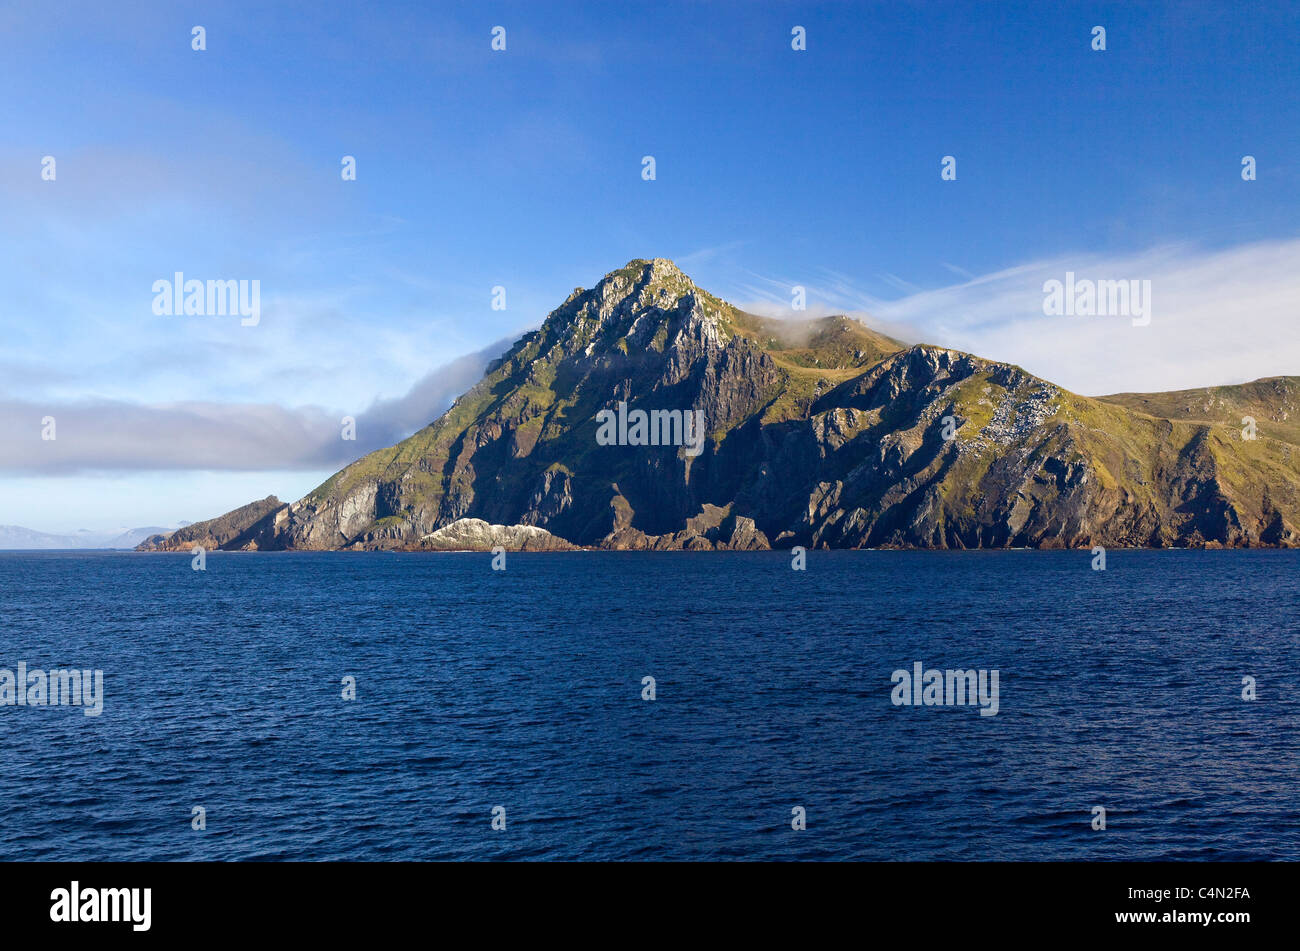 A view of Cape Horn, the southern most point in South America, in Chile. - Stock Image